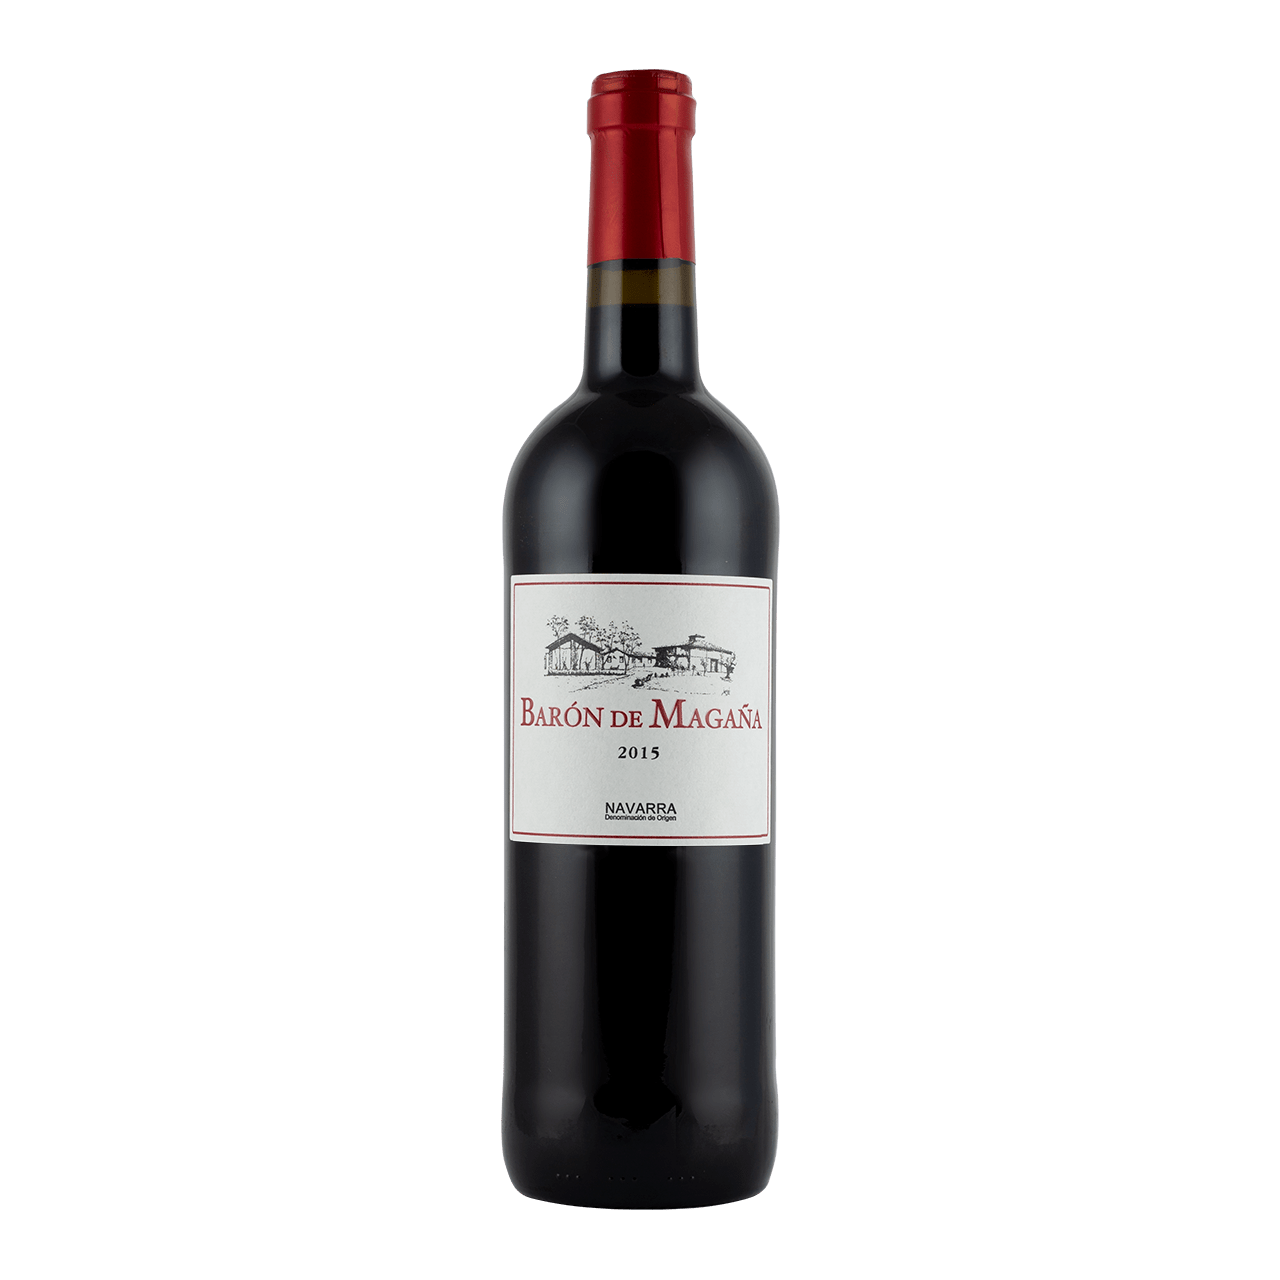 Estate-bottled full-bodied red wine